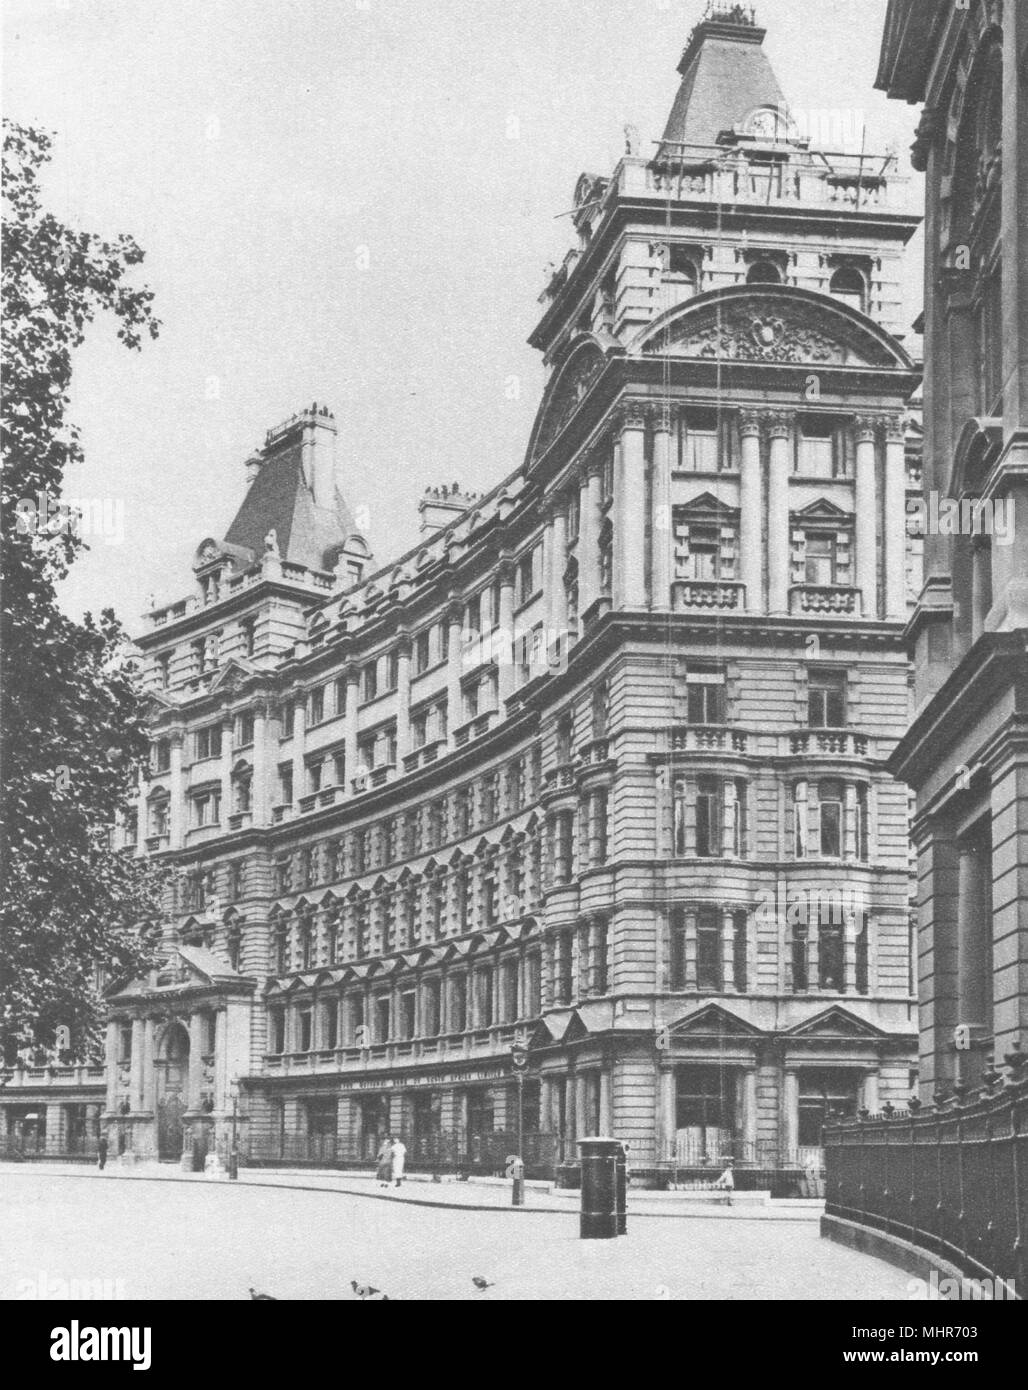 FINSBURY CIRCUS. Salisbury house. Palatial business premises in the city 1926 - Stock Image